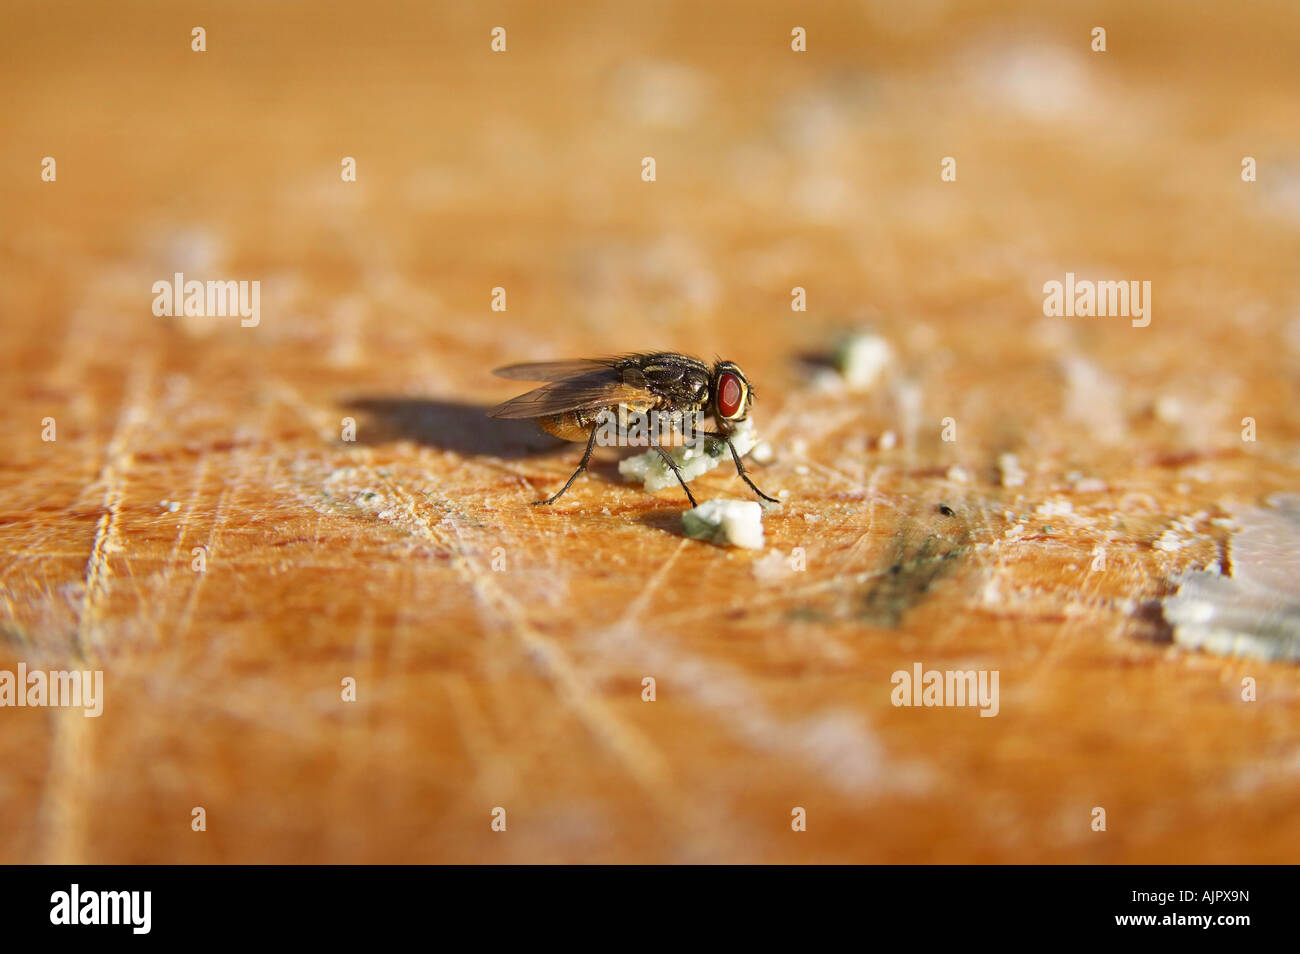 Housefly feeding on a wooden chopping board - Stock Image